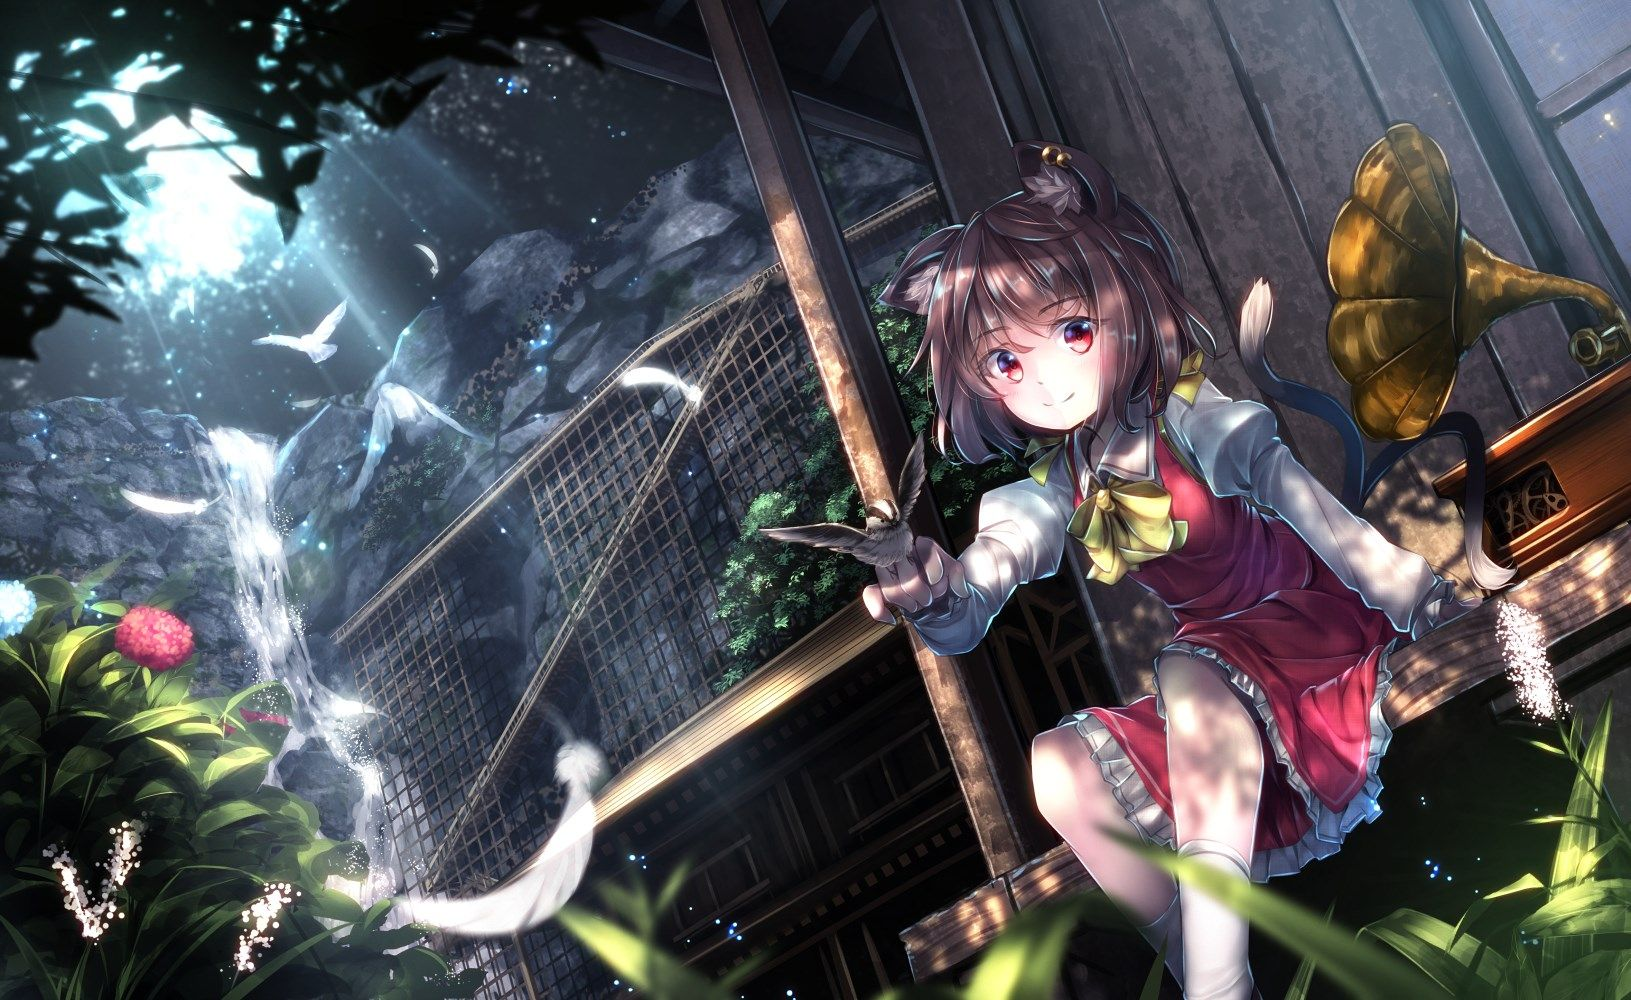 touhou desktop in 2019 Animated wallpapers for mobile